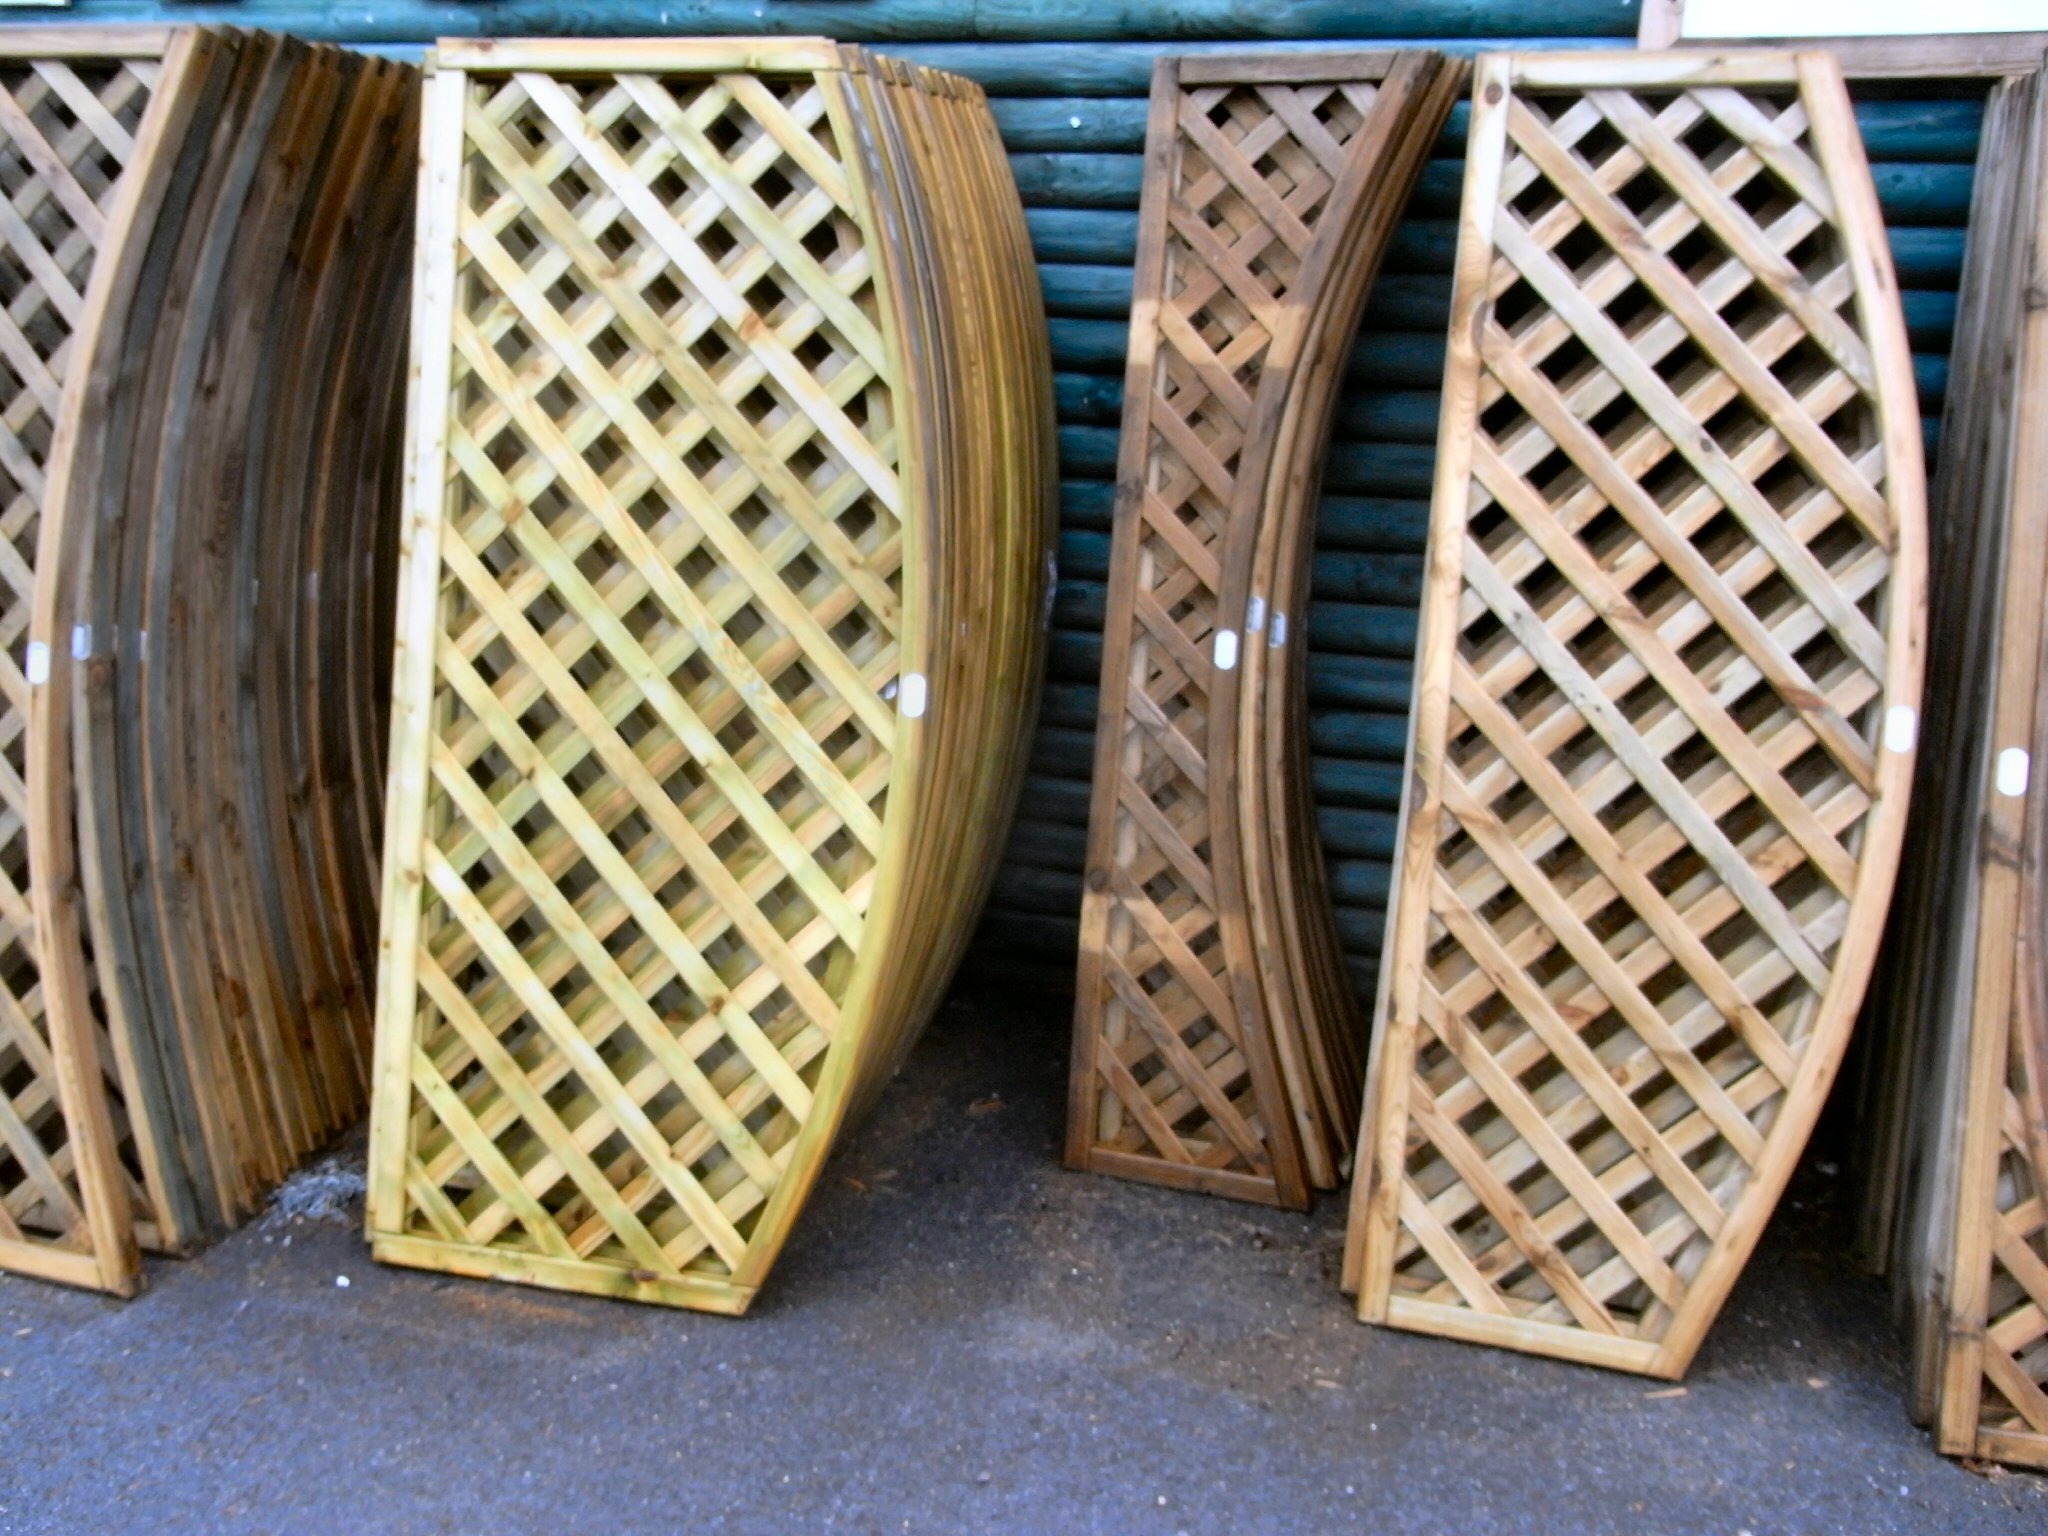 Marvelous photograph of Trellis Fencing Abacus Fencing with #386B87 color and 2048x1536 pixels